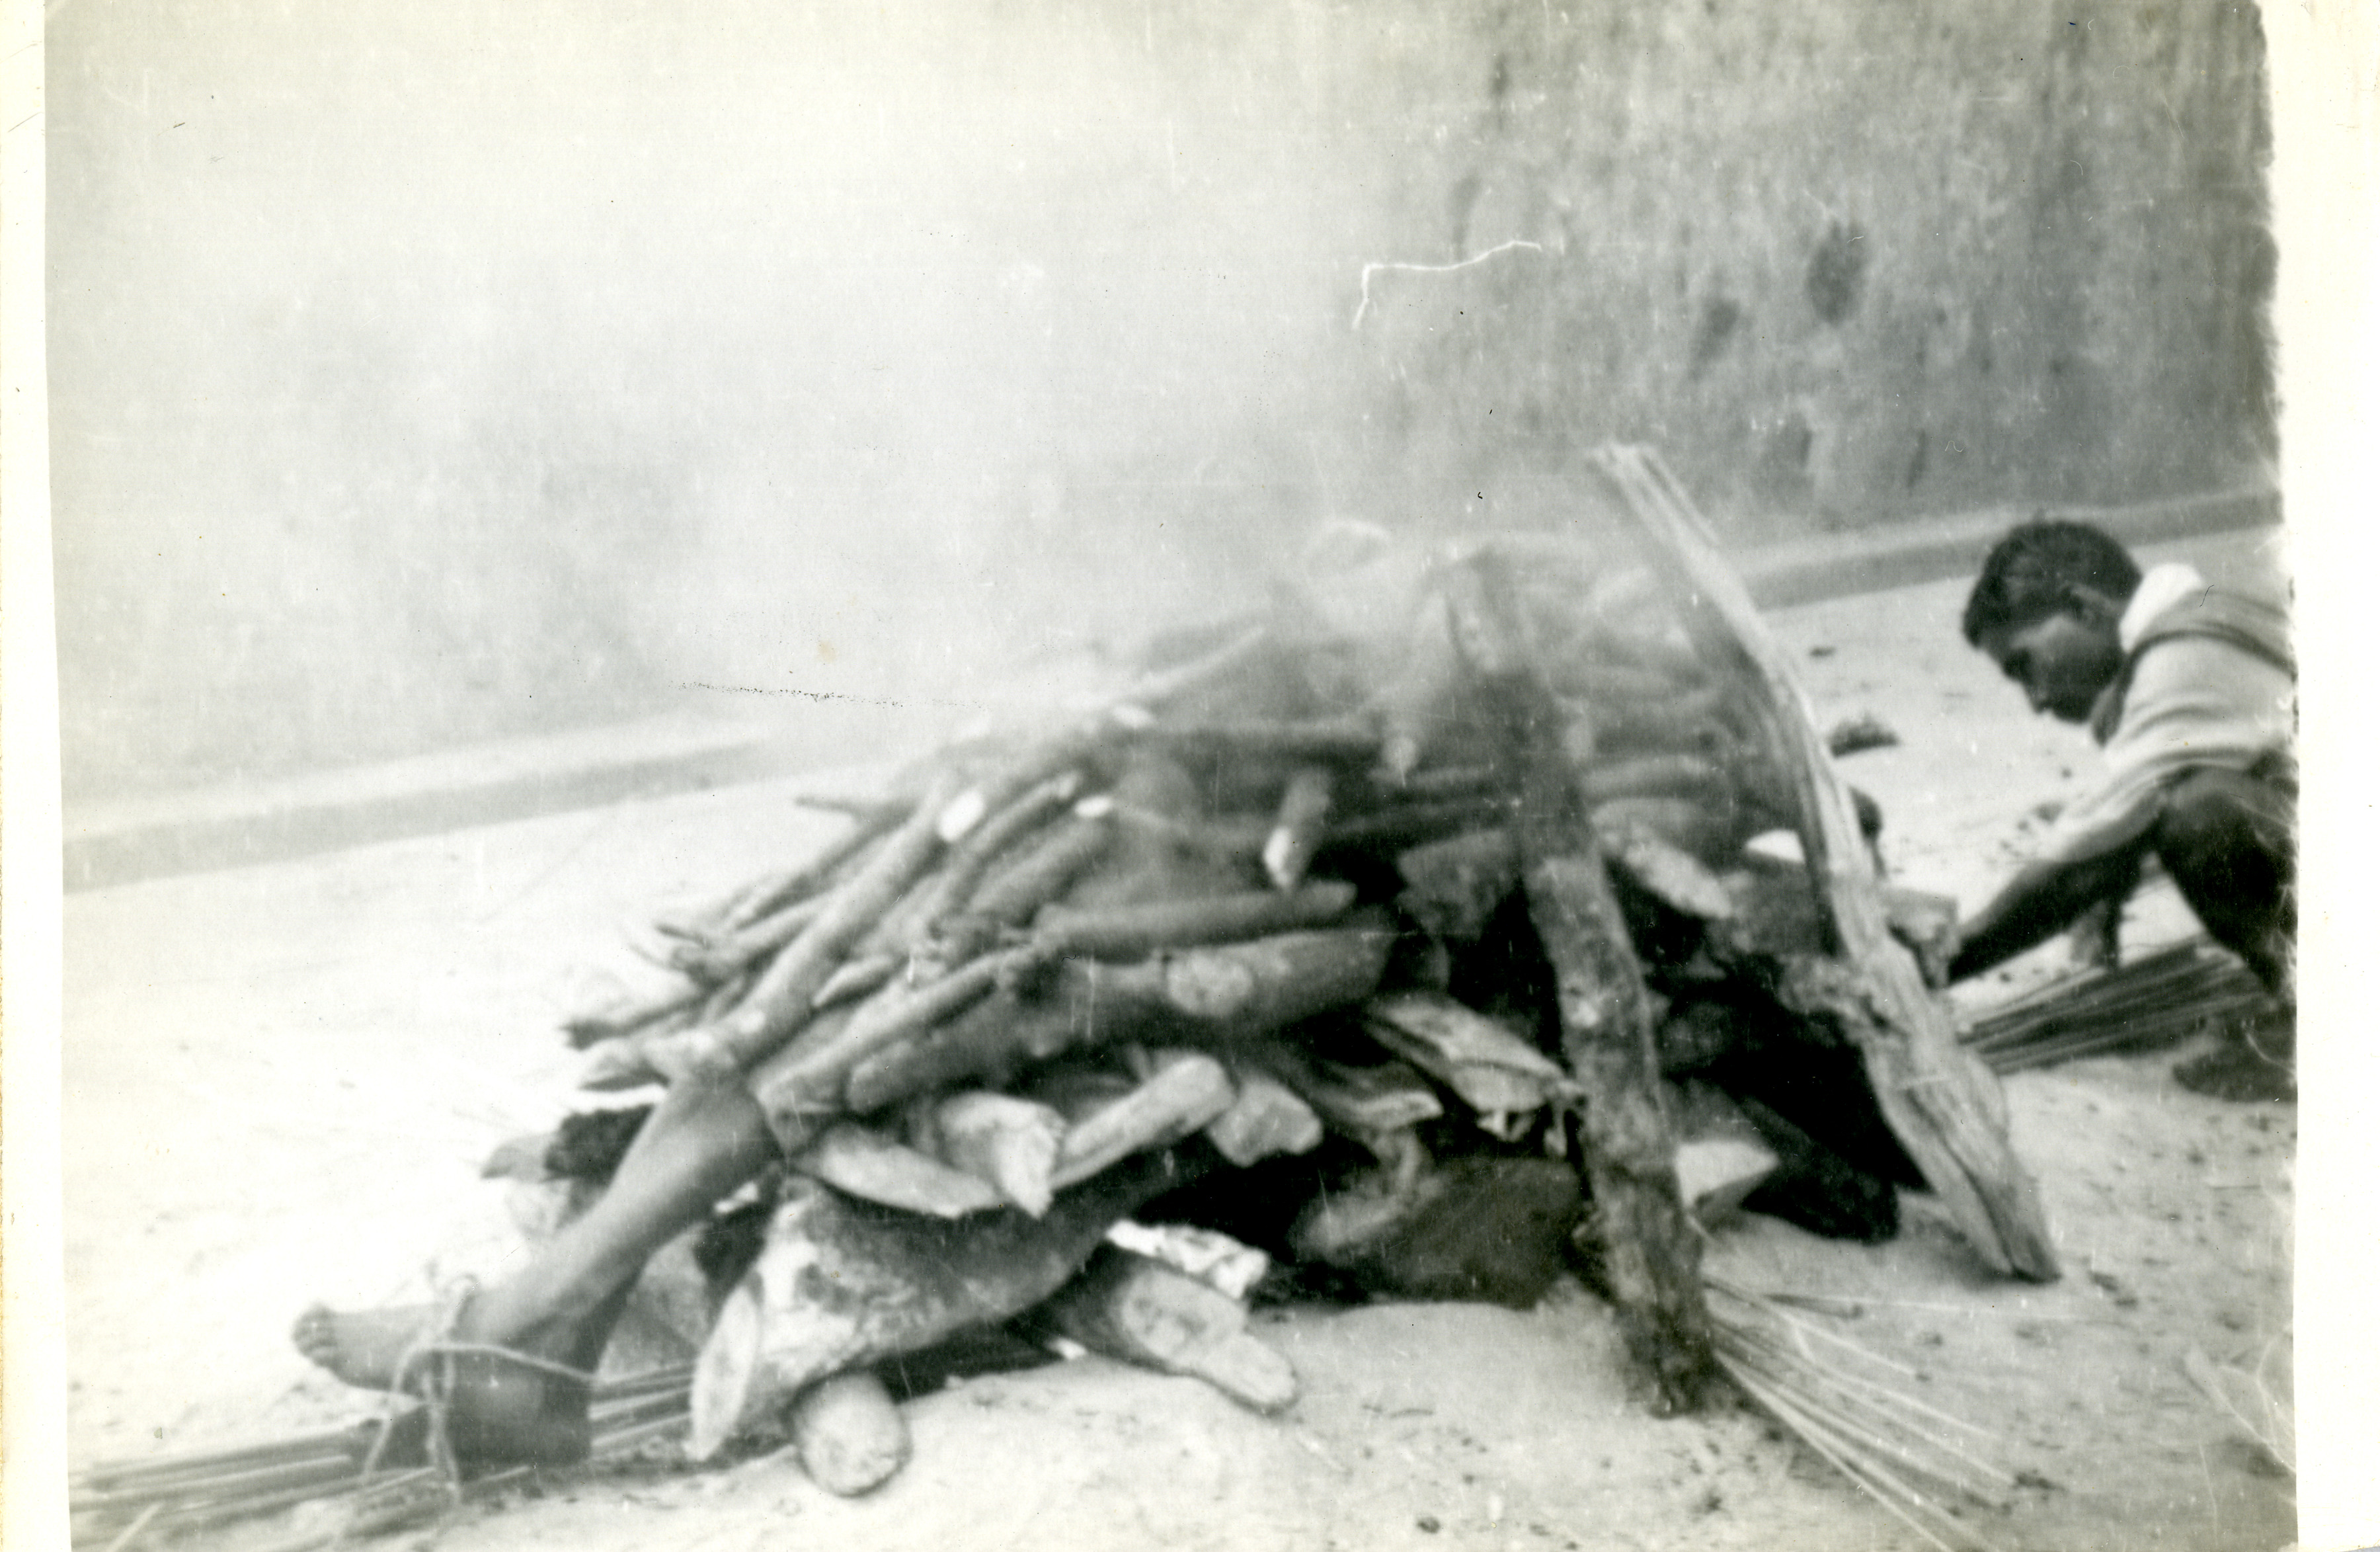 A funeral pyre in India in 1943 | The Digital Collections of